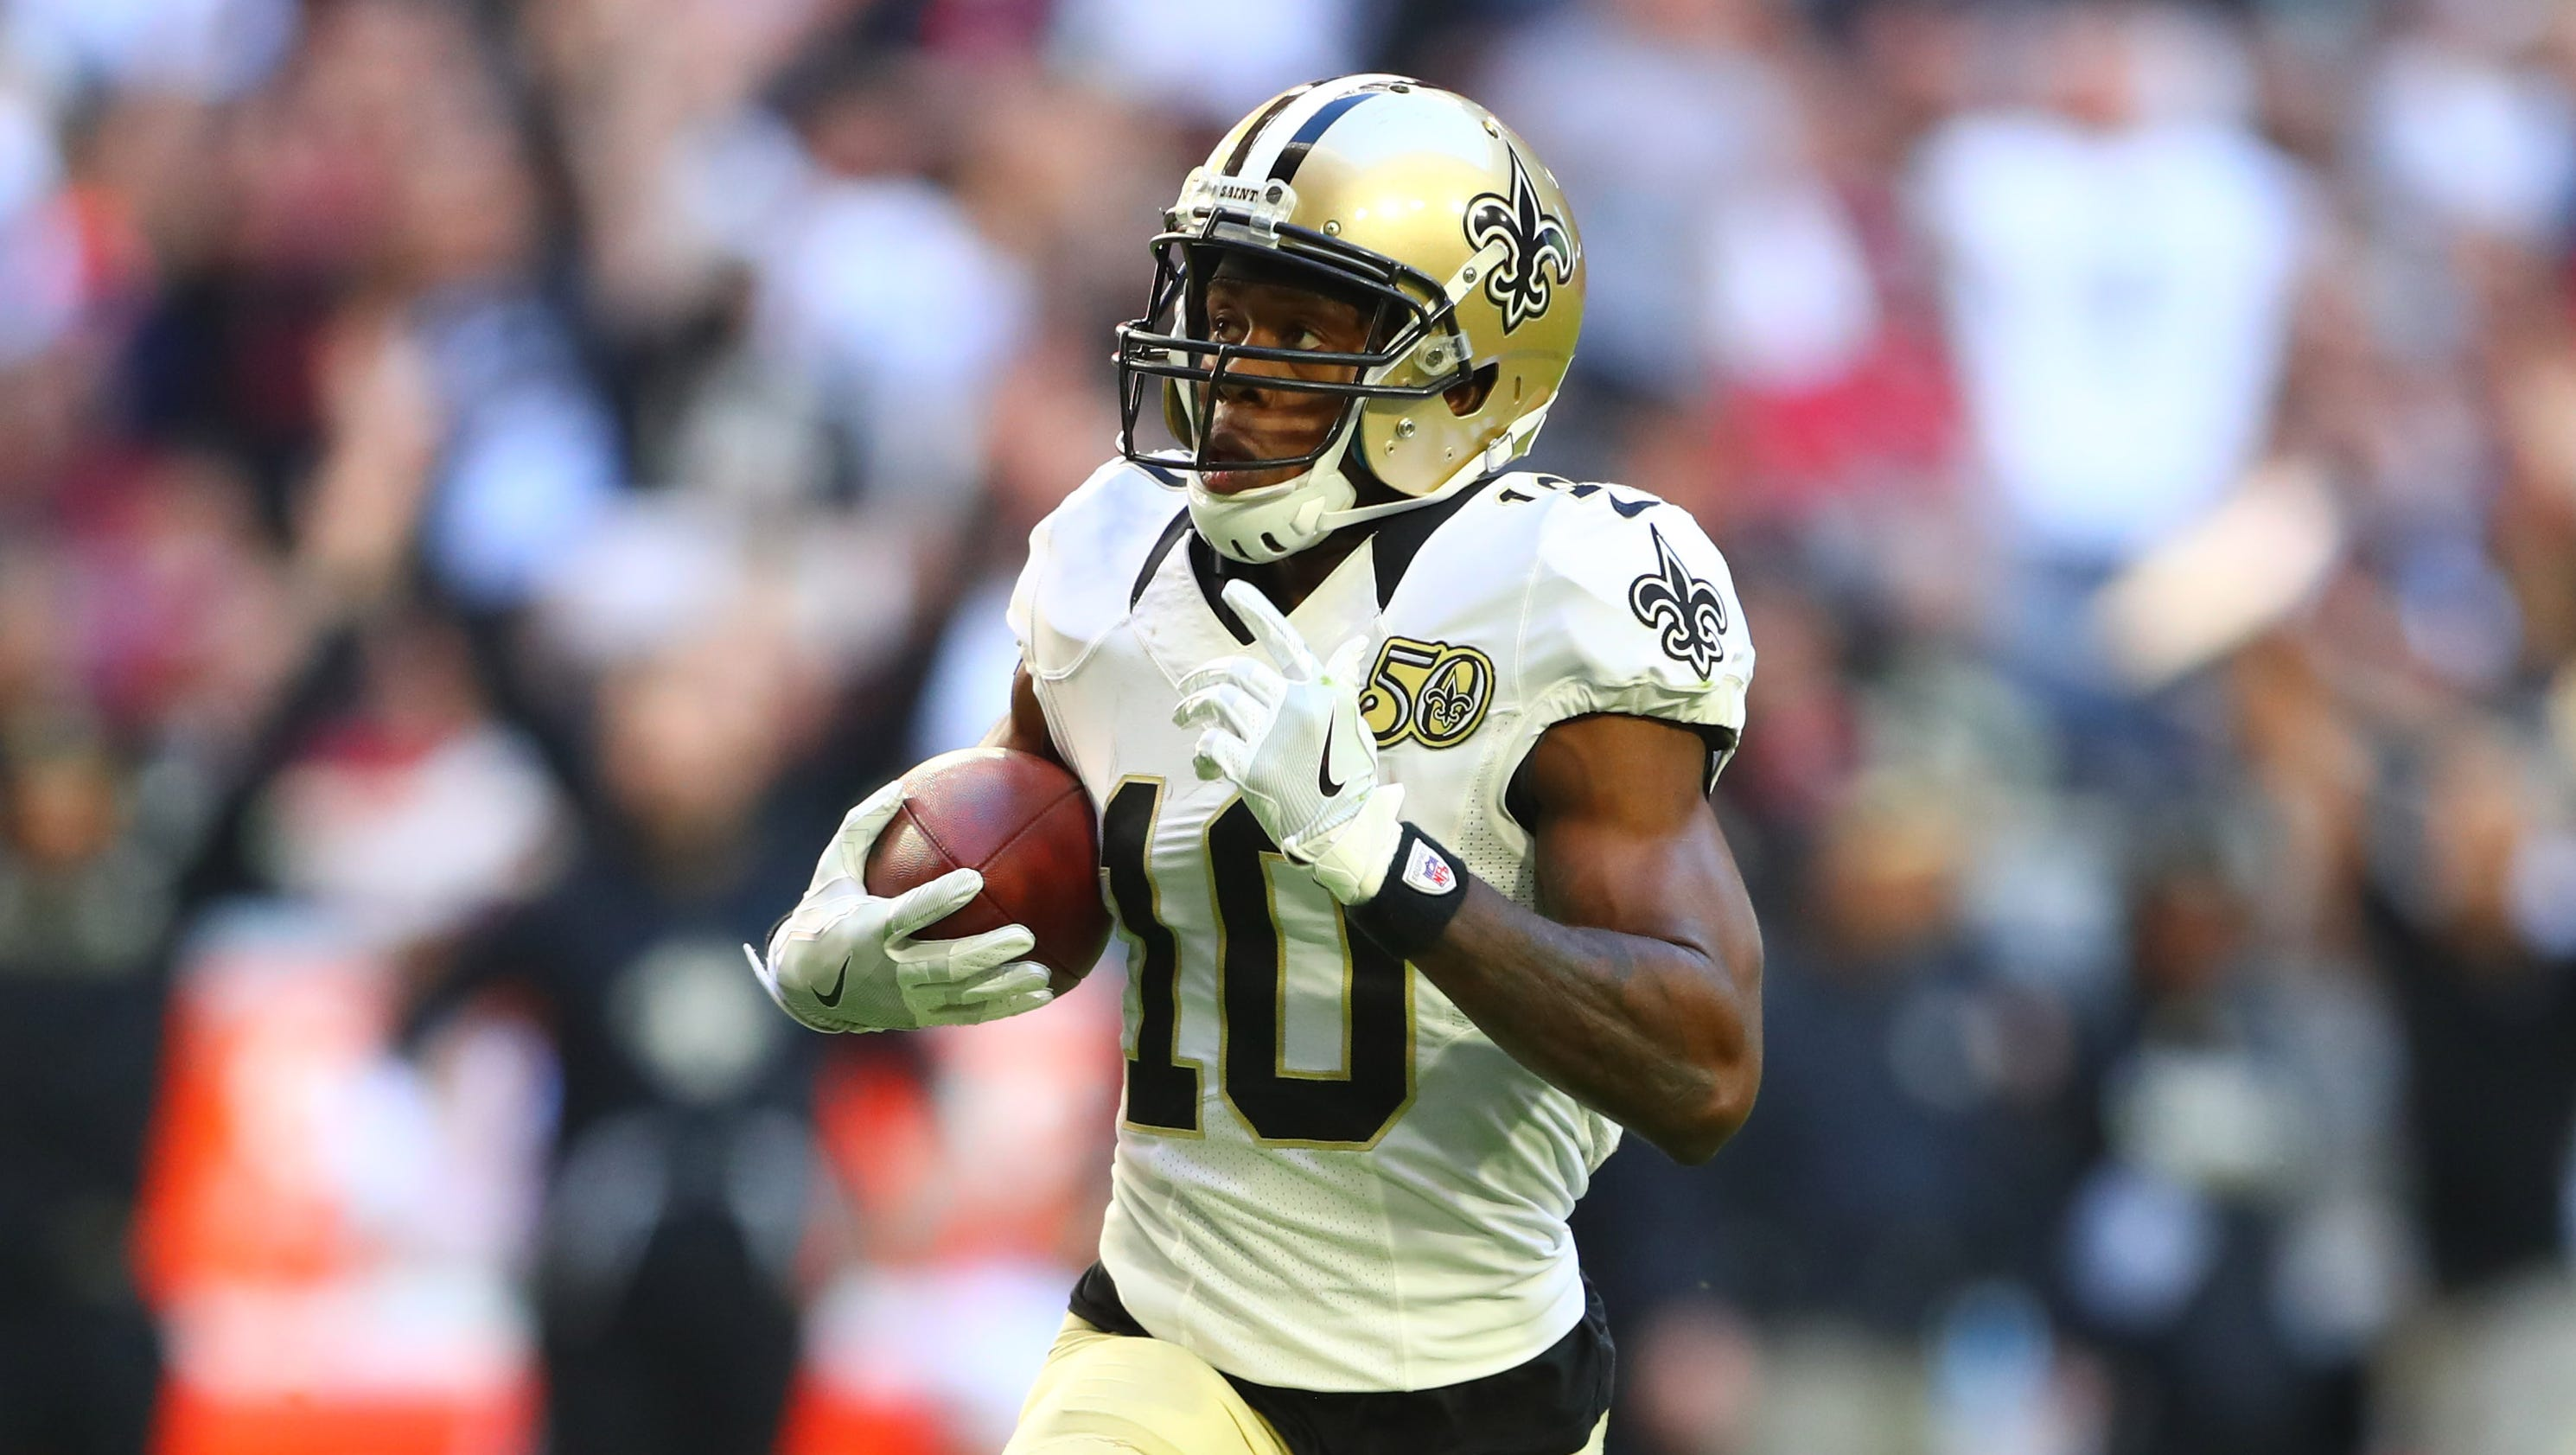 Patriots land WR Brandin Cooks in trade with Saints